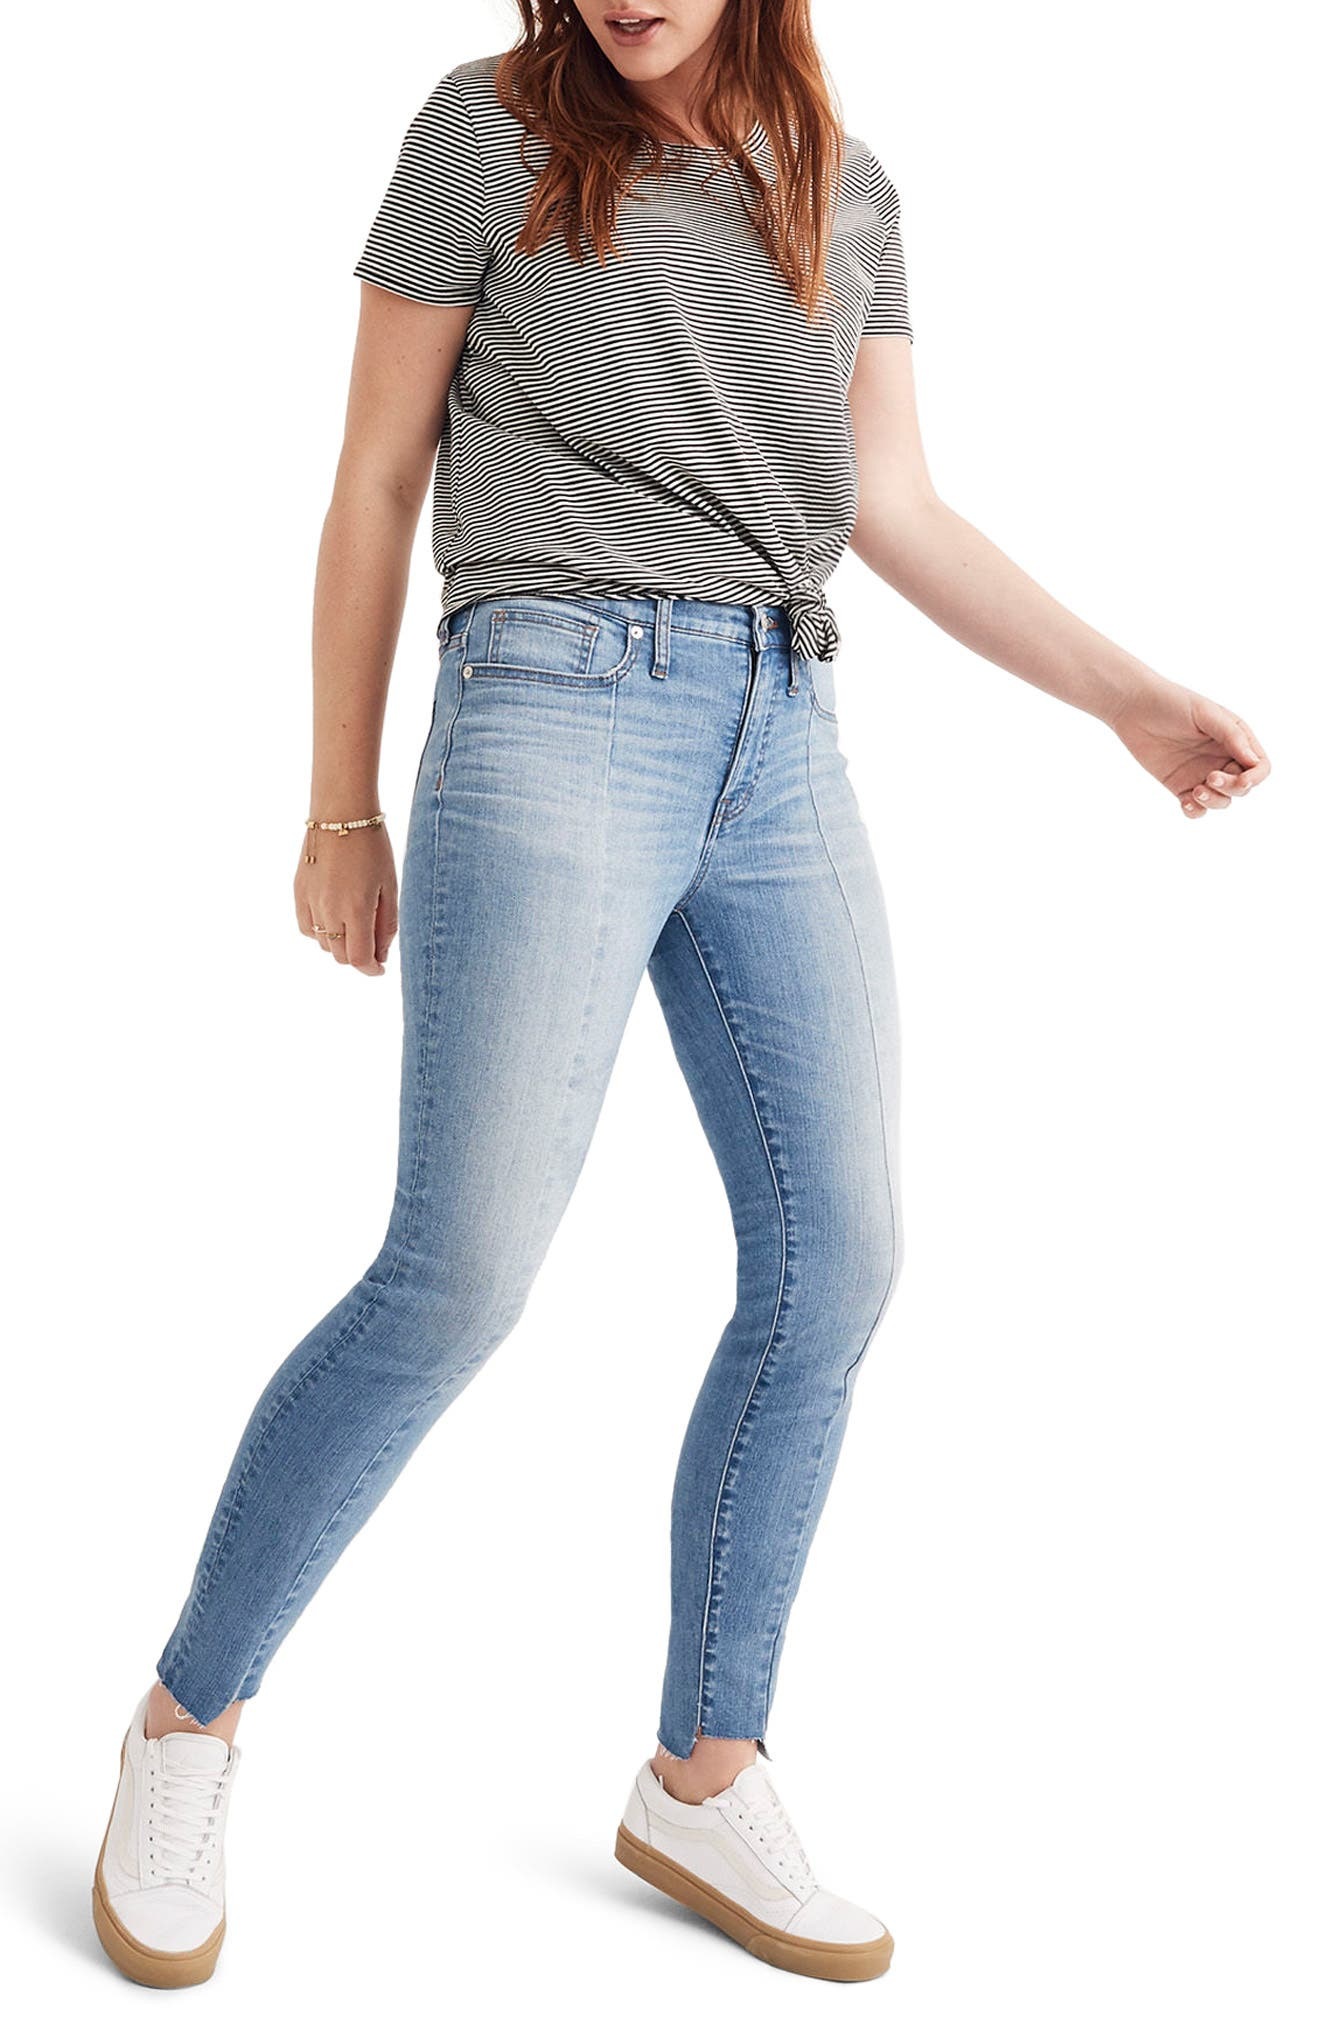 9-Inch High Waist Seamed Step-Hem Edition Skinny Jeans,                             Main thumbnail 1, color,                             August